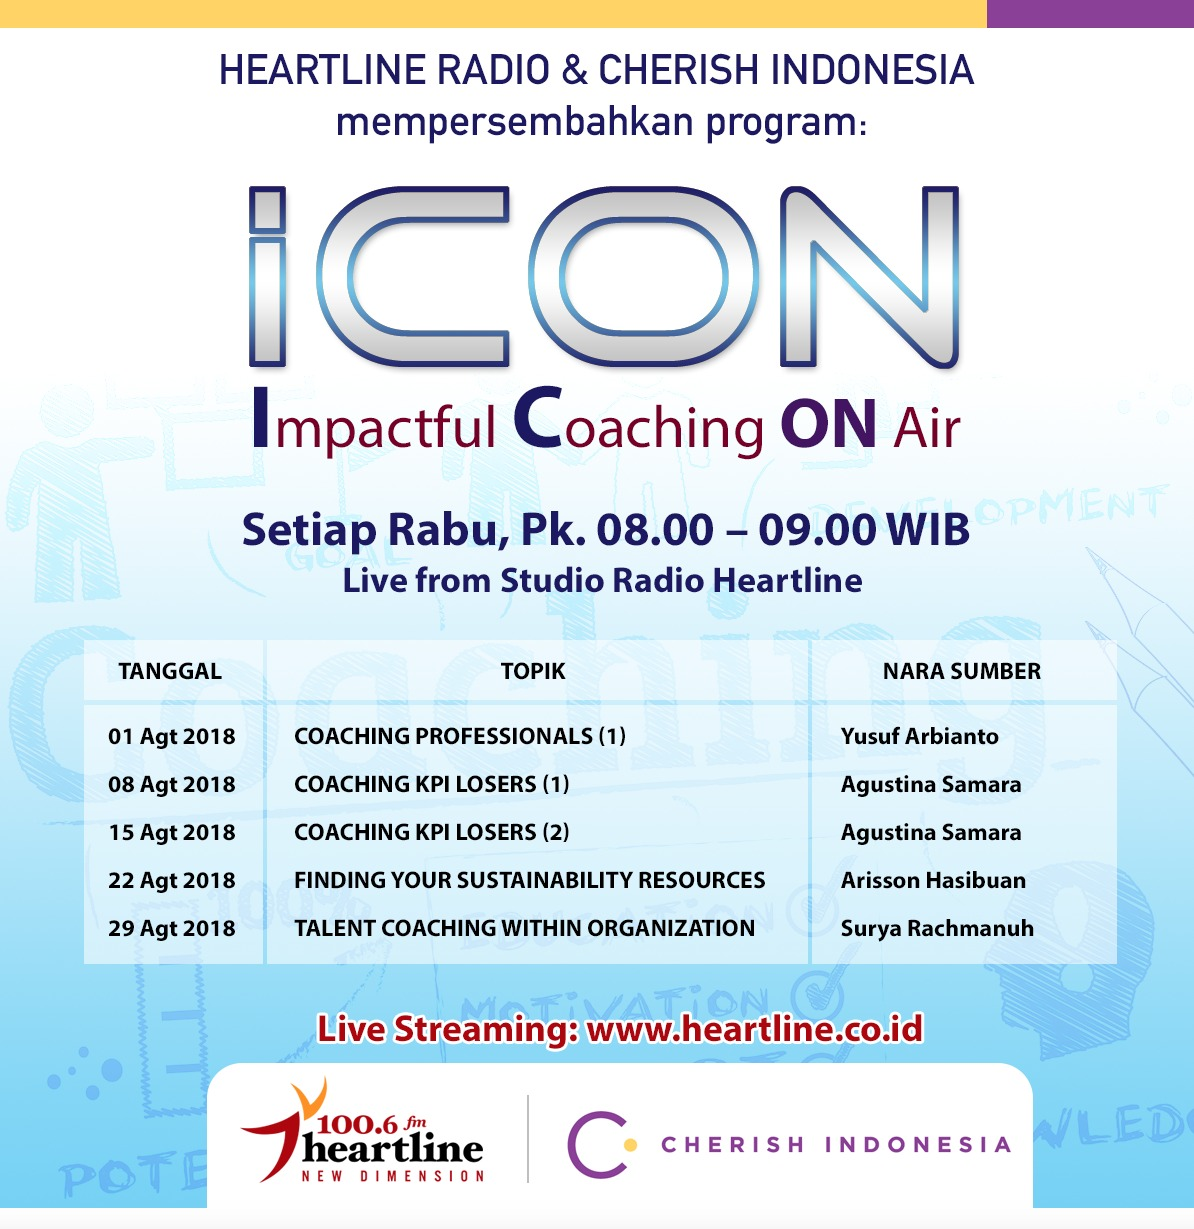 Impactful Coaching on Air